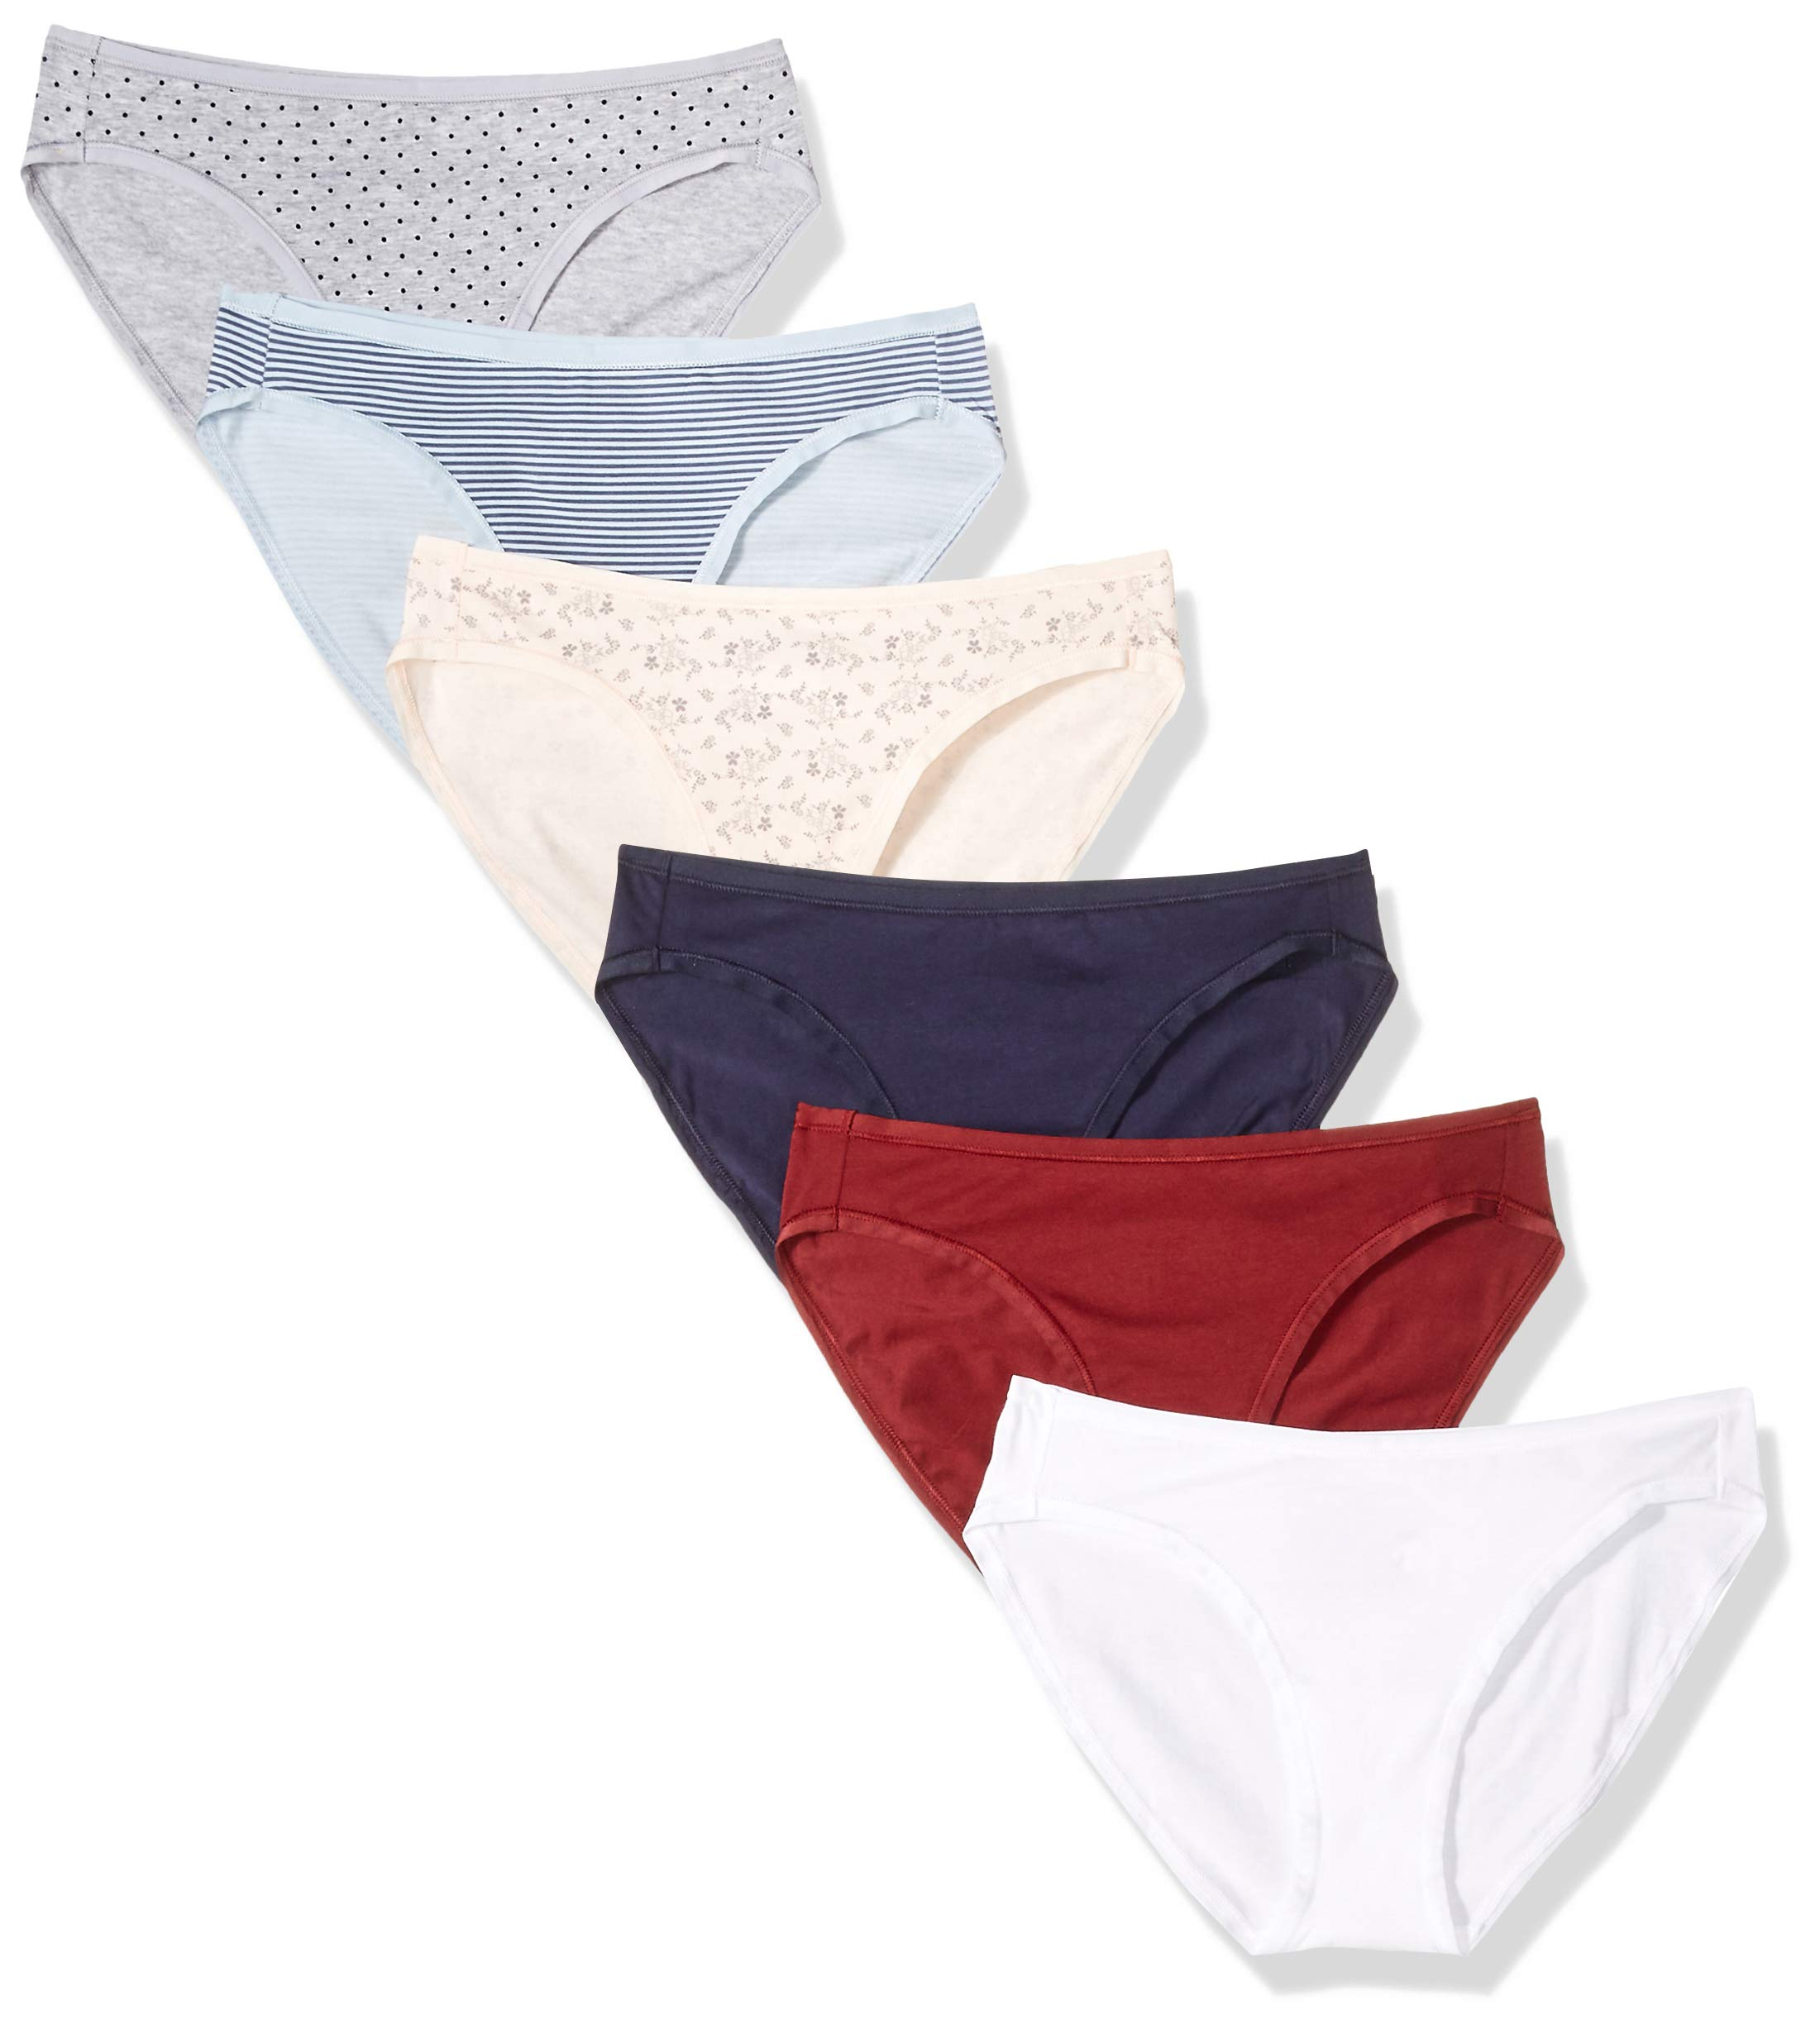 b15e7e400375 Best Rated in Women's Panties & Helpful Customer Reviews - Amazon.com